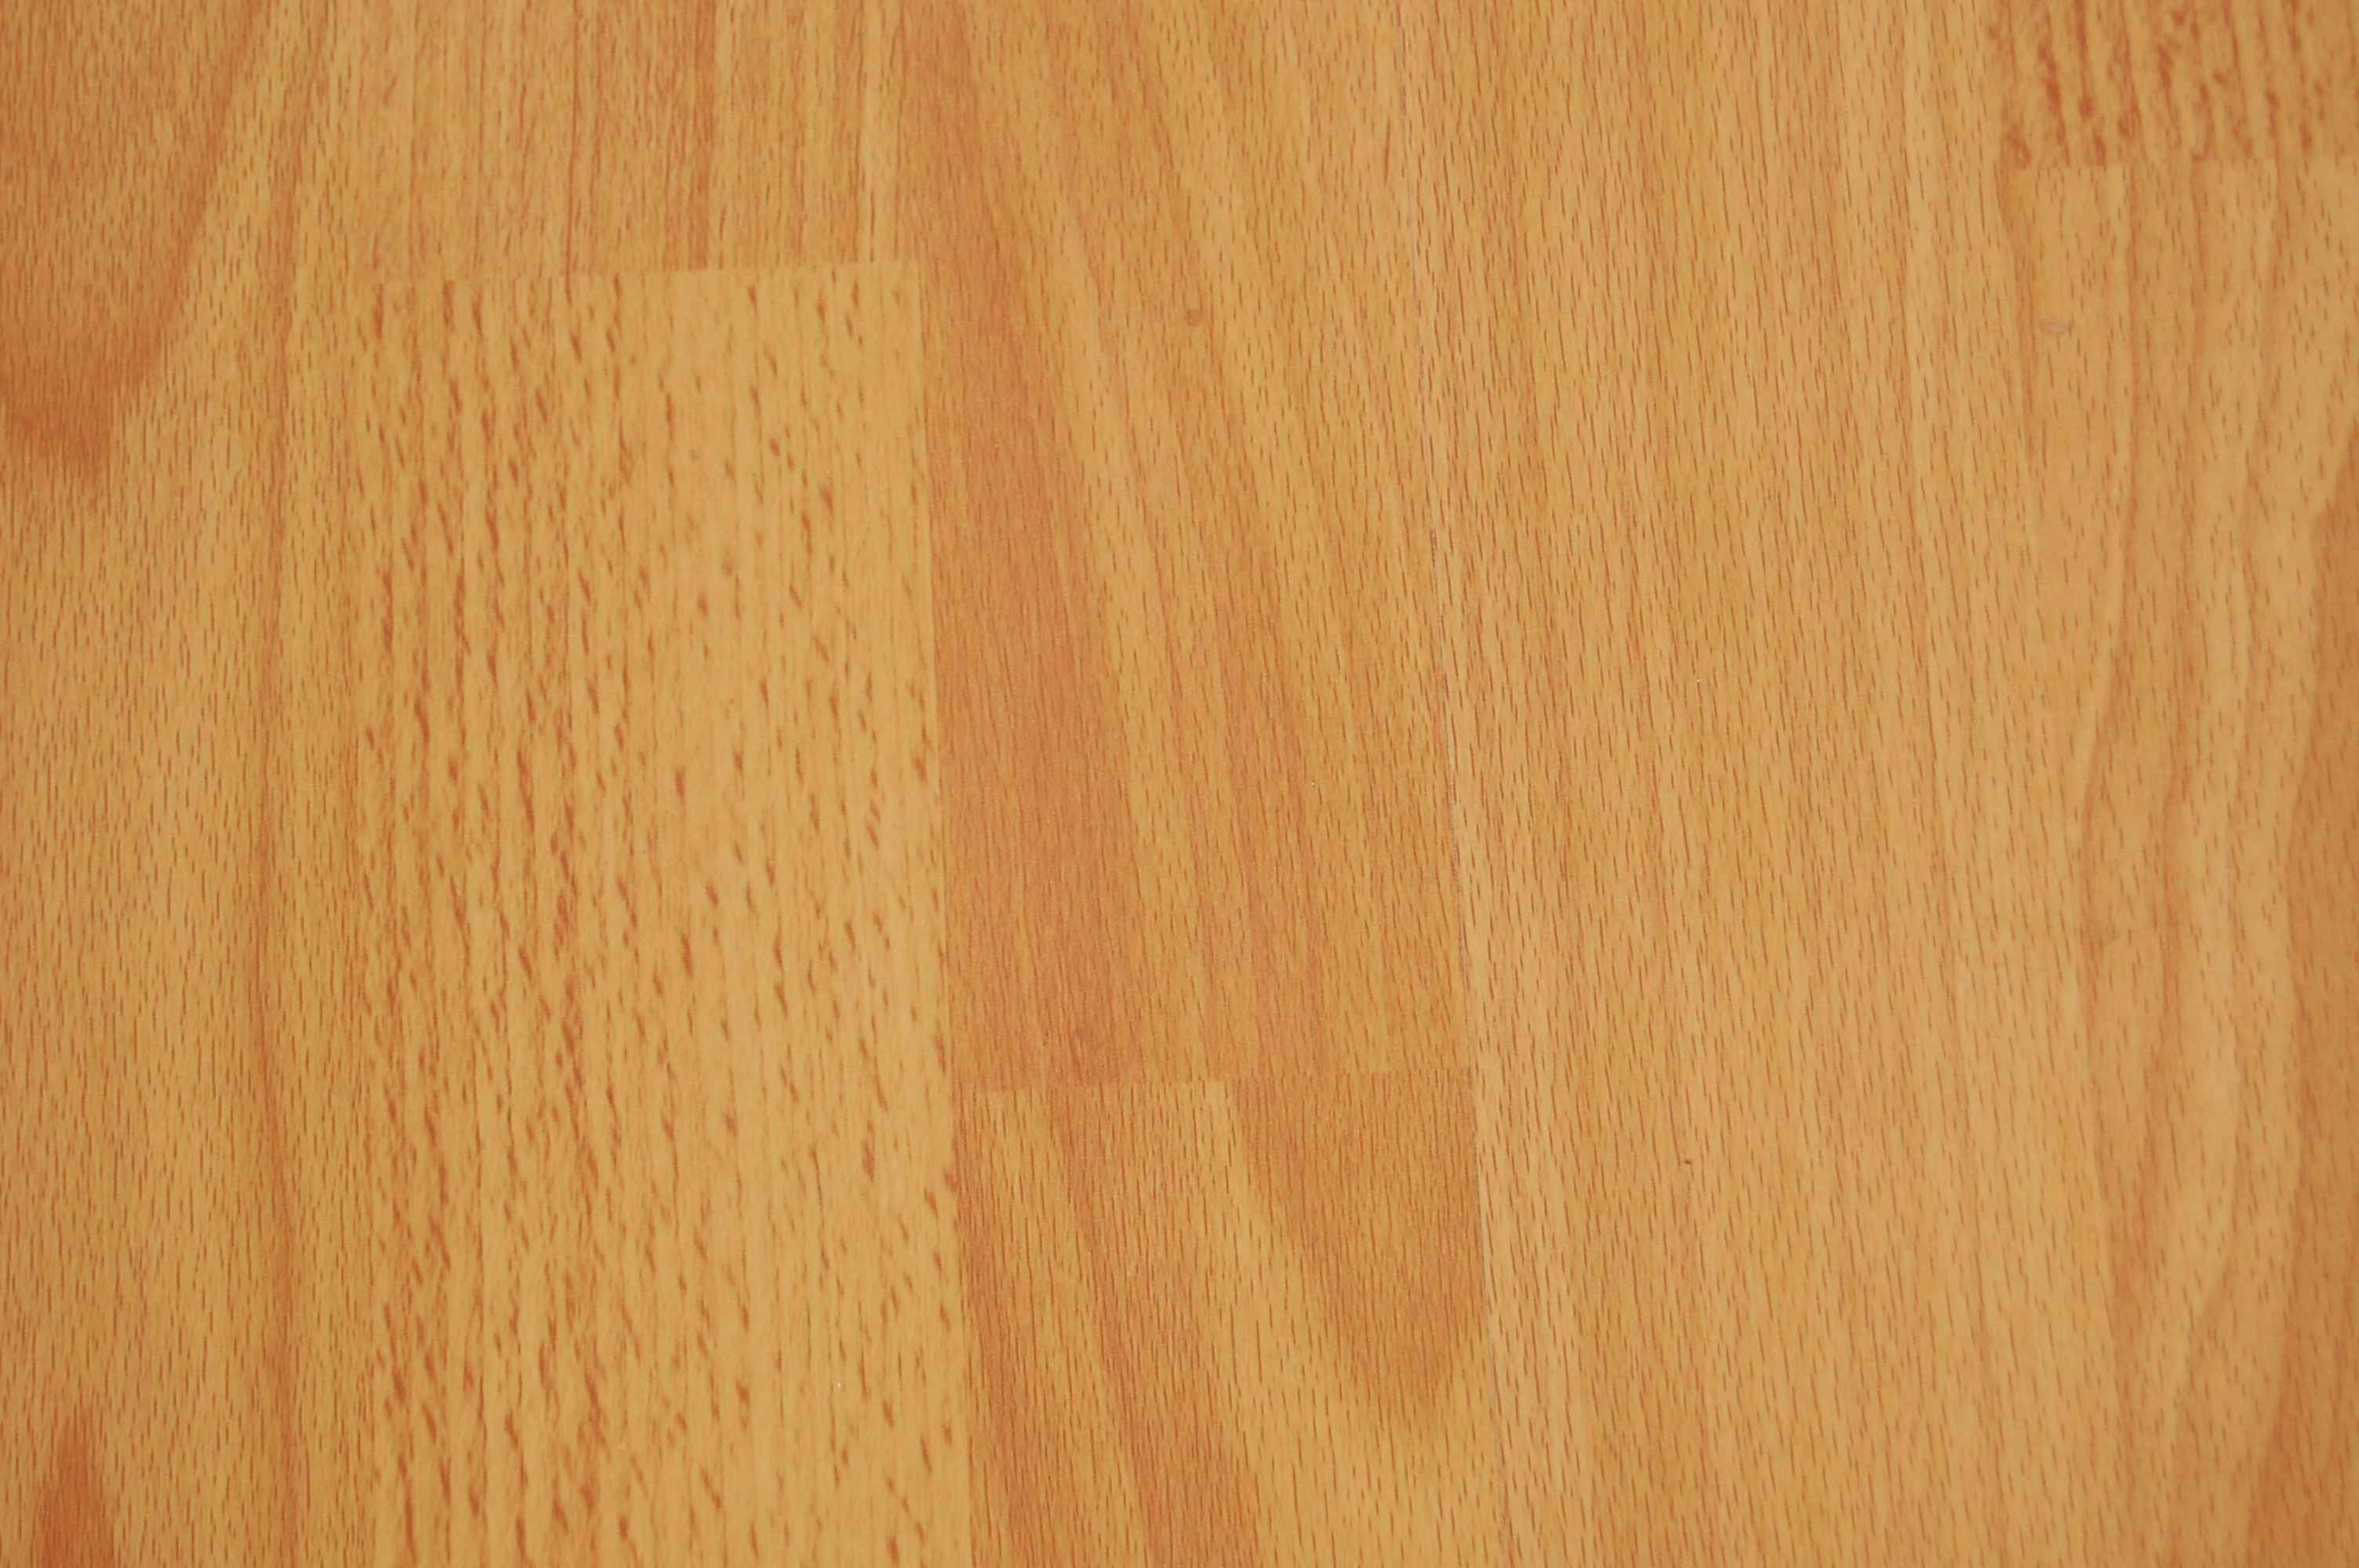 Laminate Flooring Wood And Laminate Flooring